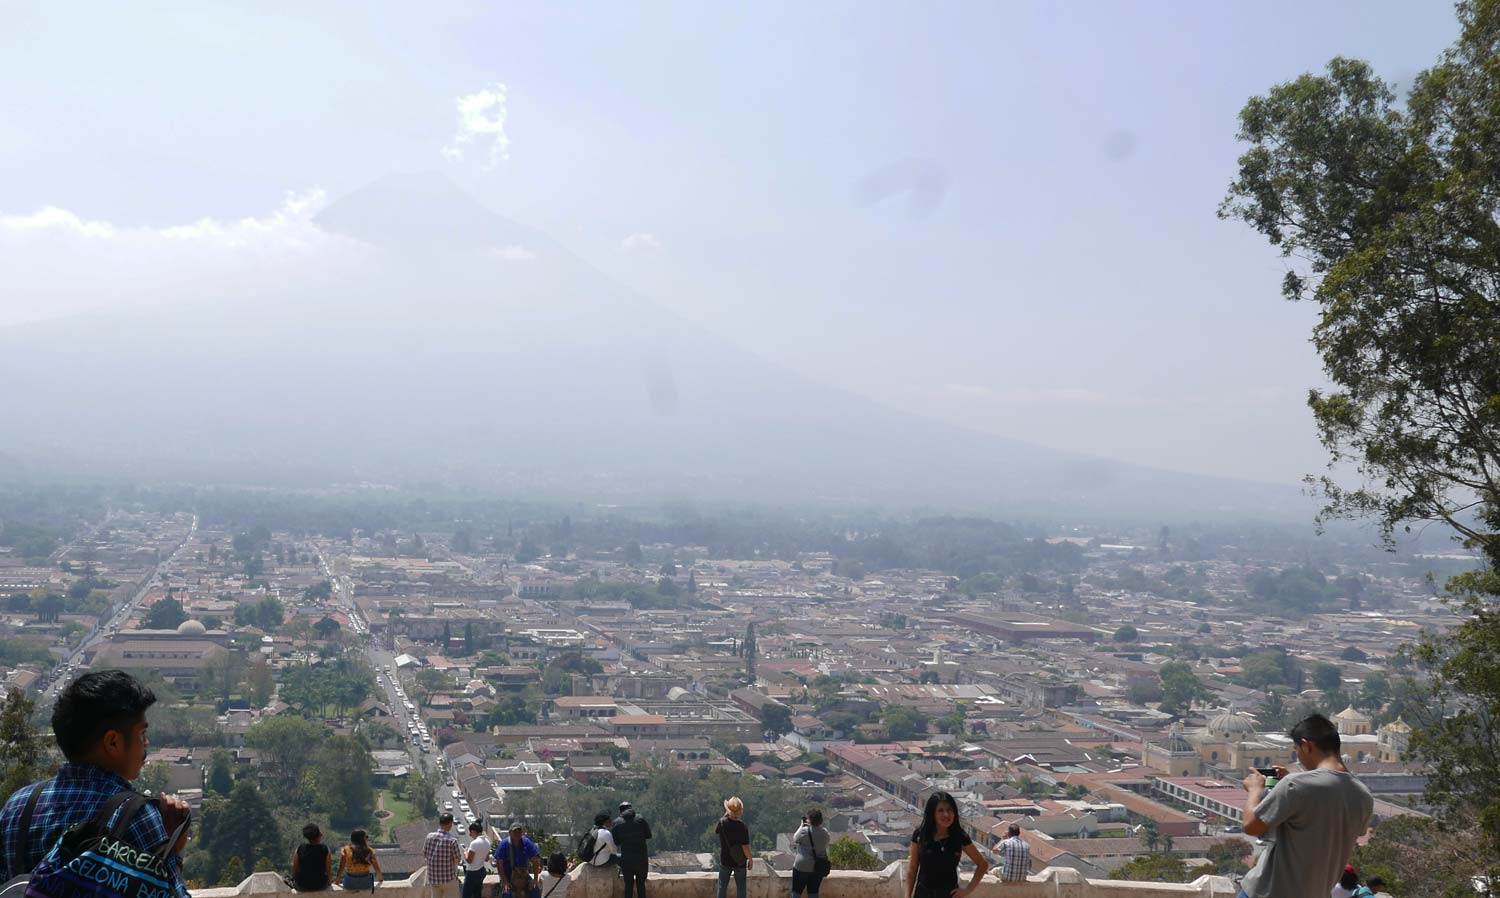 Panorama picture of Antigua Guatemala, with Volcan de Agua in the background